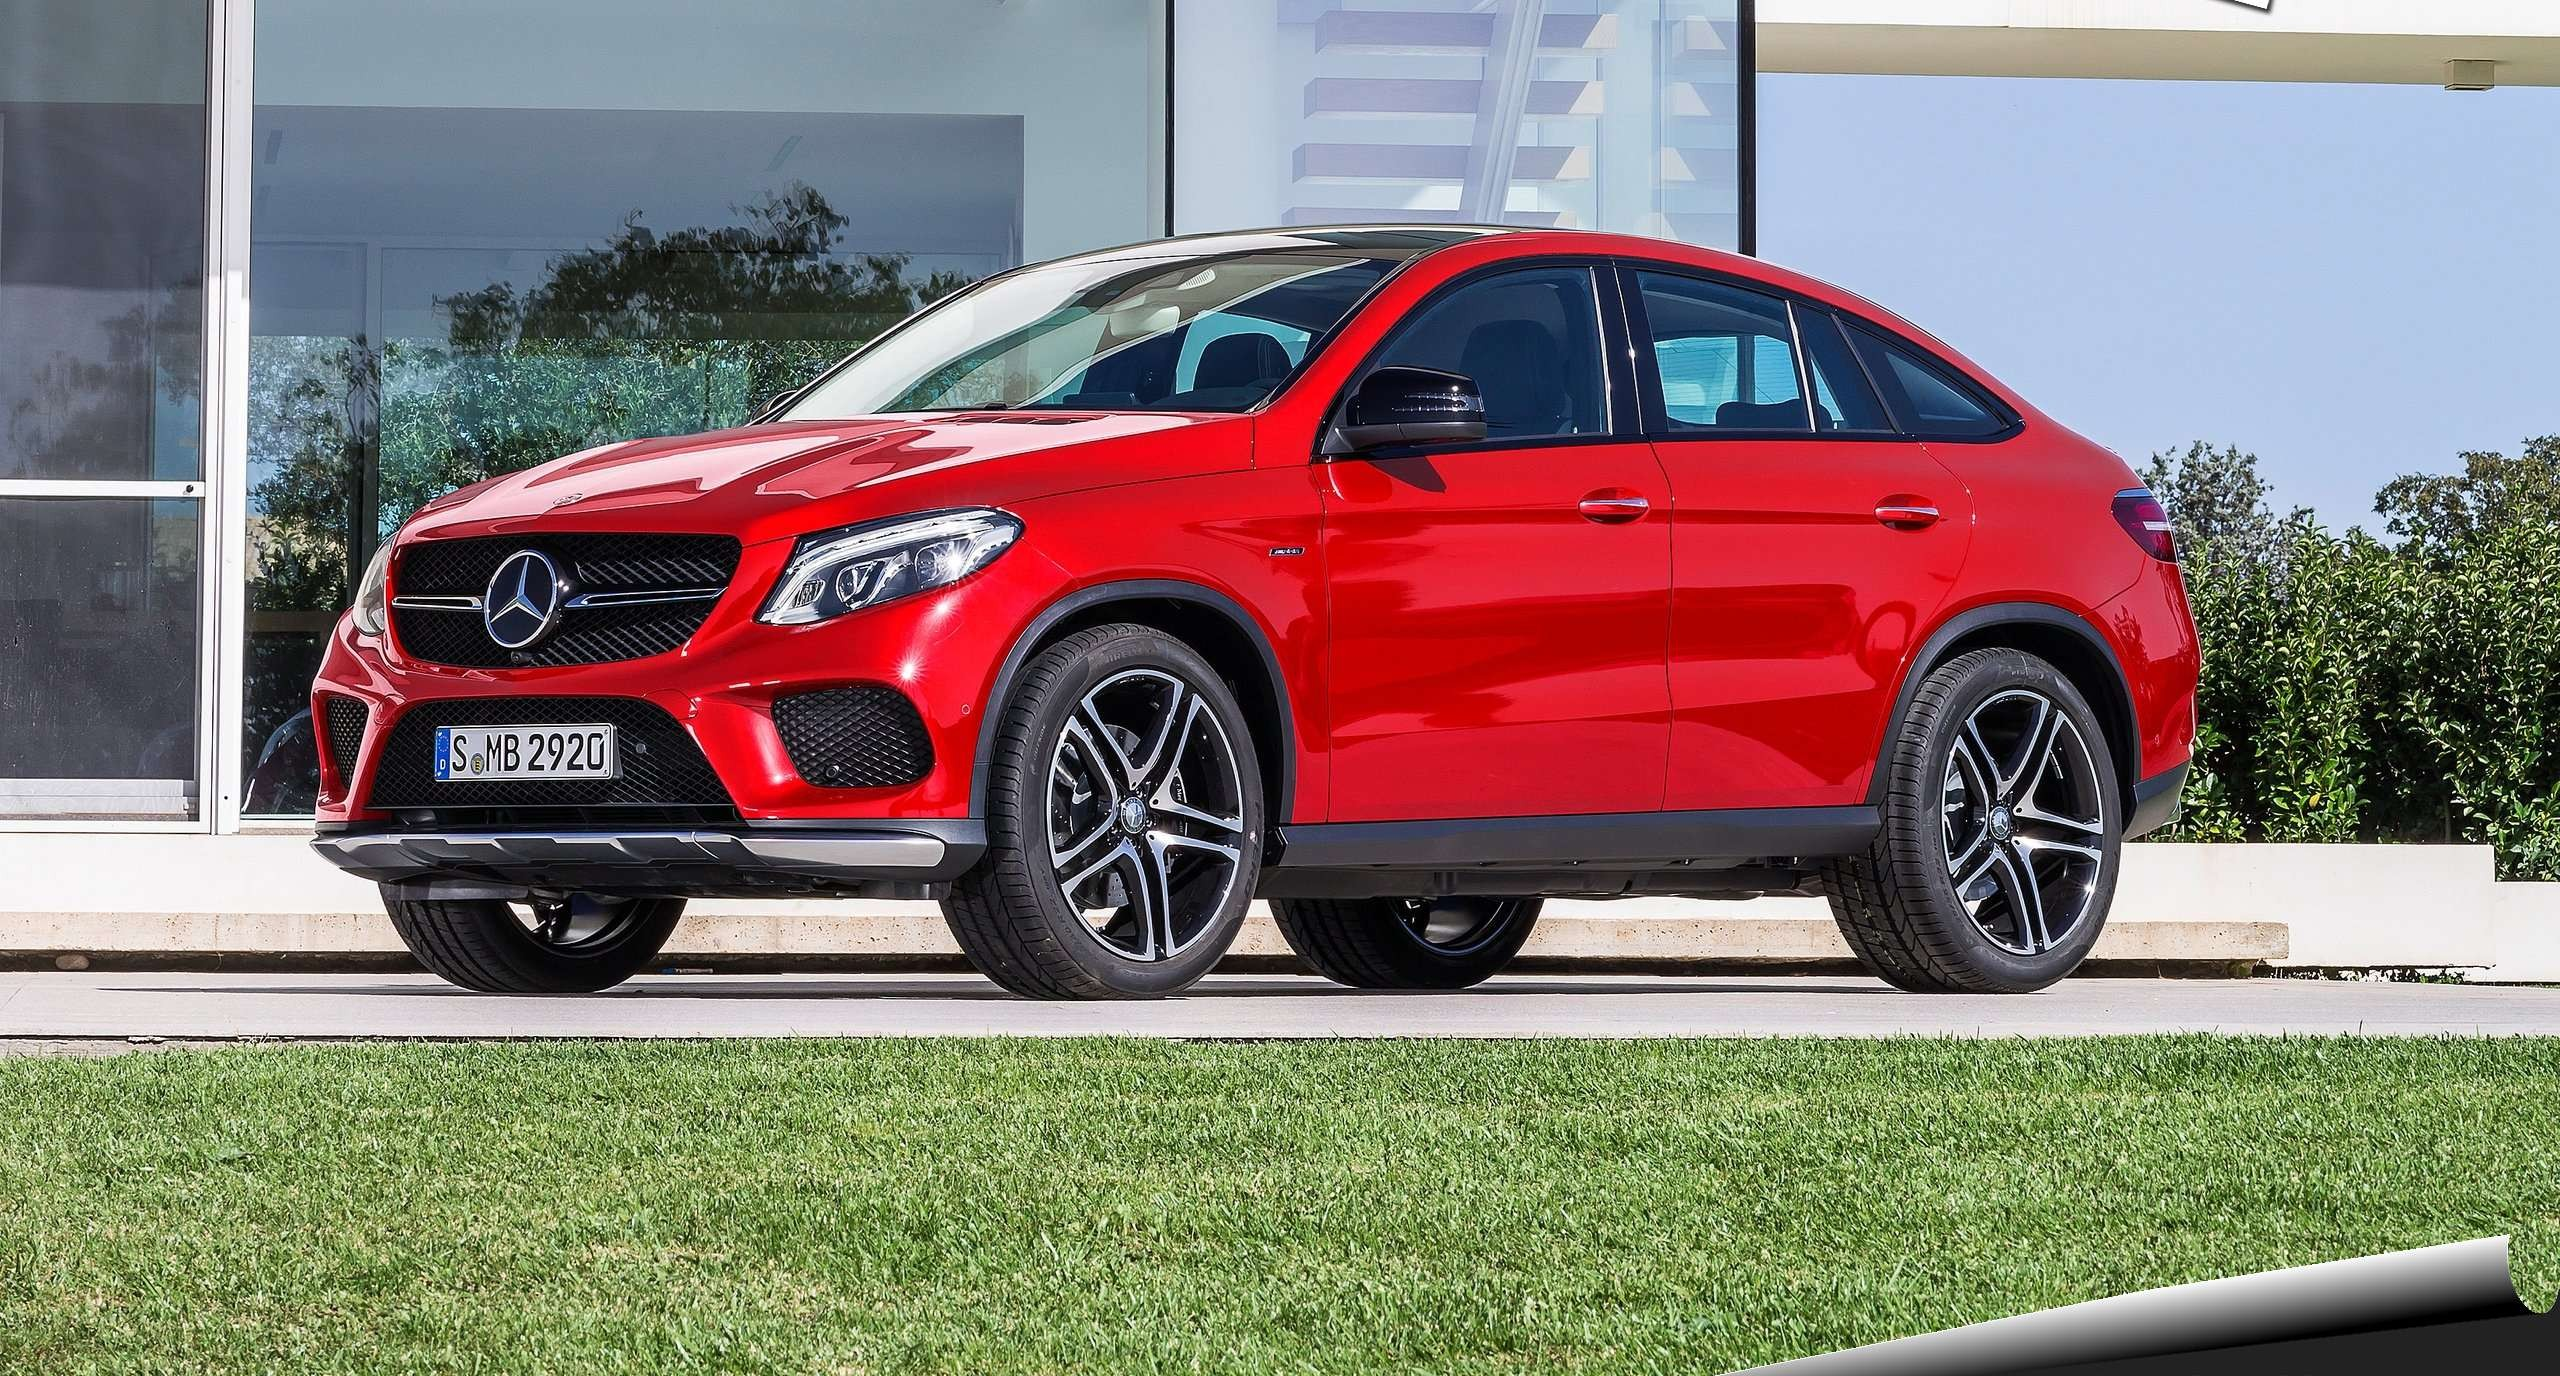 https://autowise.com/wp-content/uploads/2015/02/2016-Mercedes-Benz-GLE450-AMG-4Matic-Coupe-Side-e1424966242536.jpg